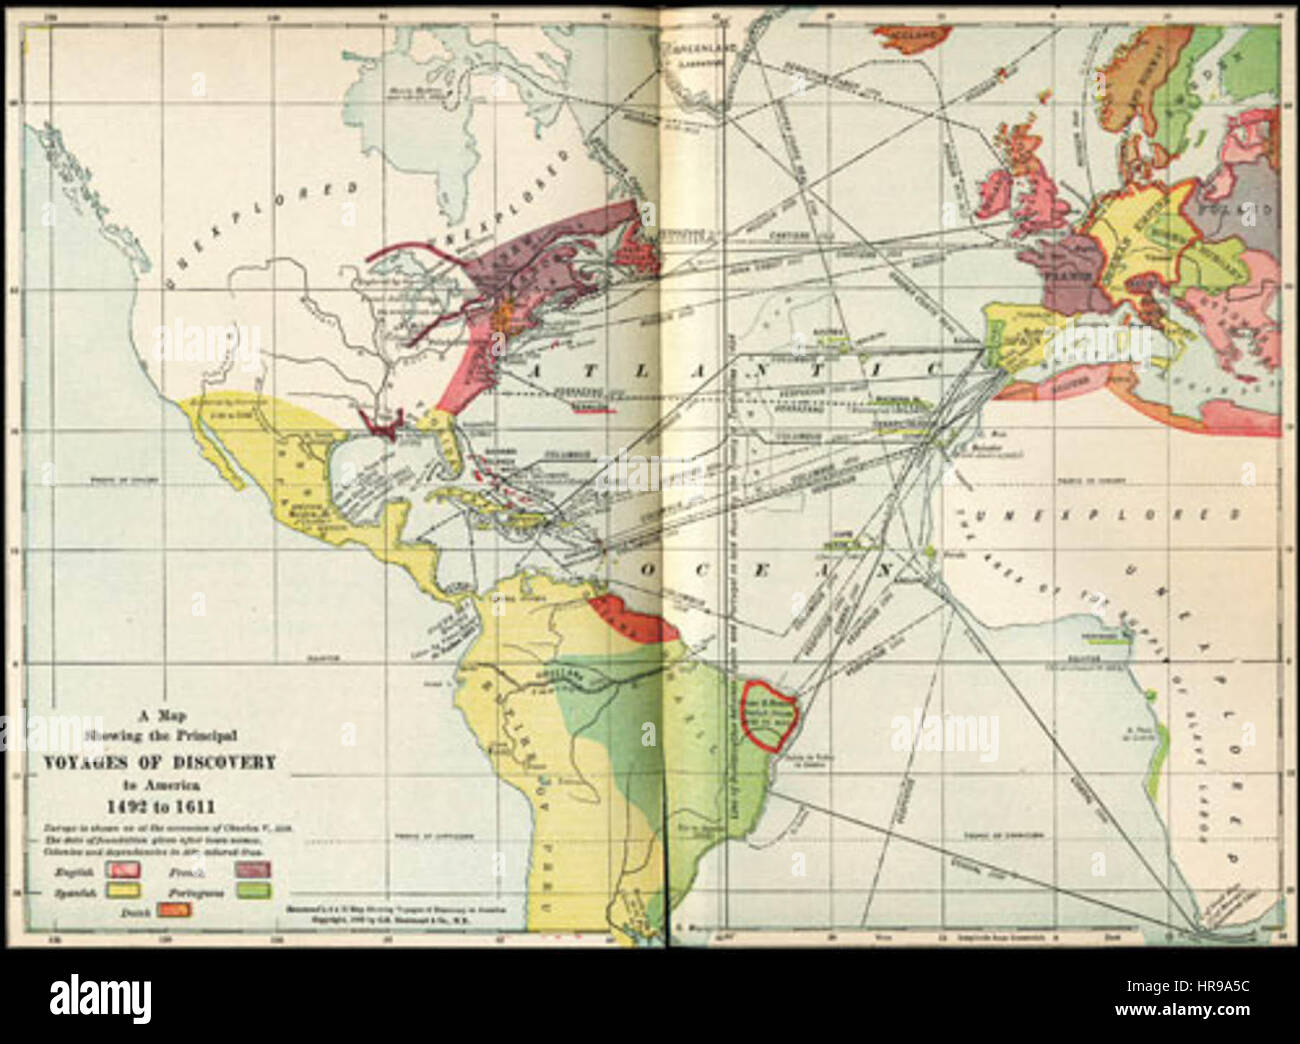 colonial exchange during the age of discovery This period is known as the age of exploration during this age, european explorers searched for trade routes,  of all the european colonial powers,.